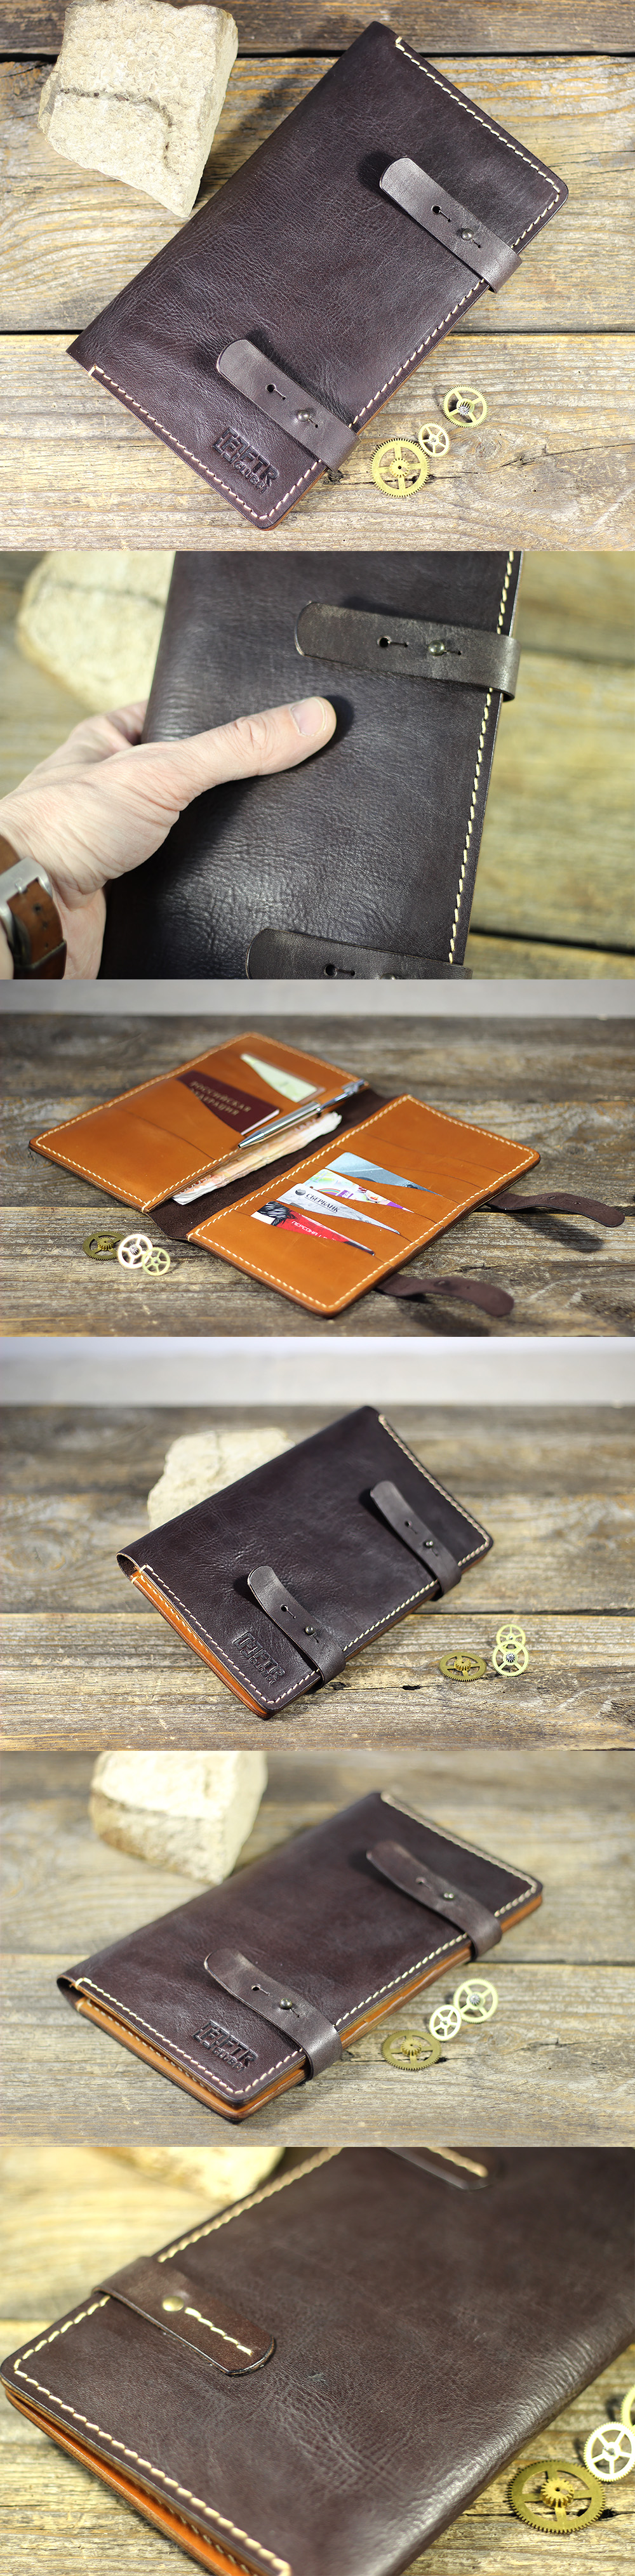 Travel wallet. Handmade. Facture. [FTR club#1] Single quantity. Exact repetition is impossible.